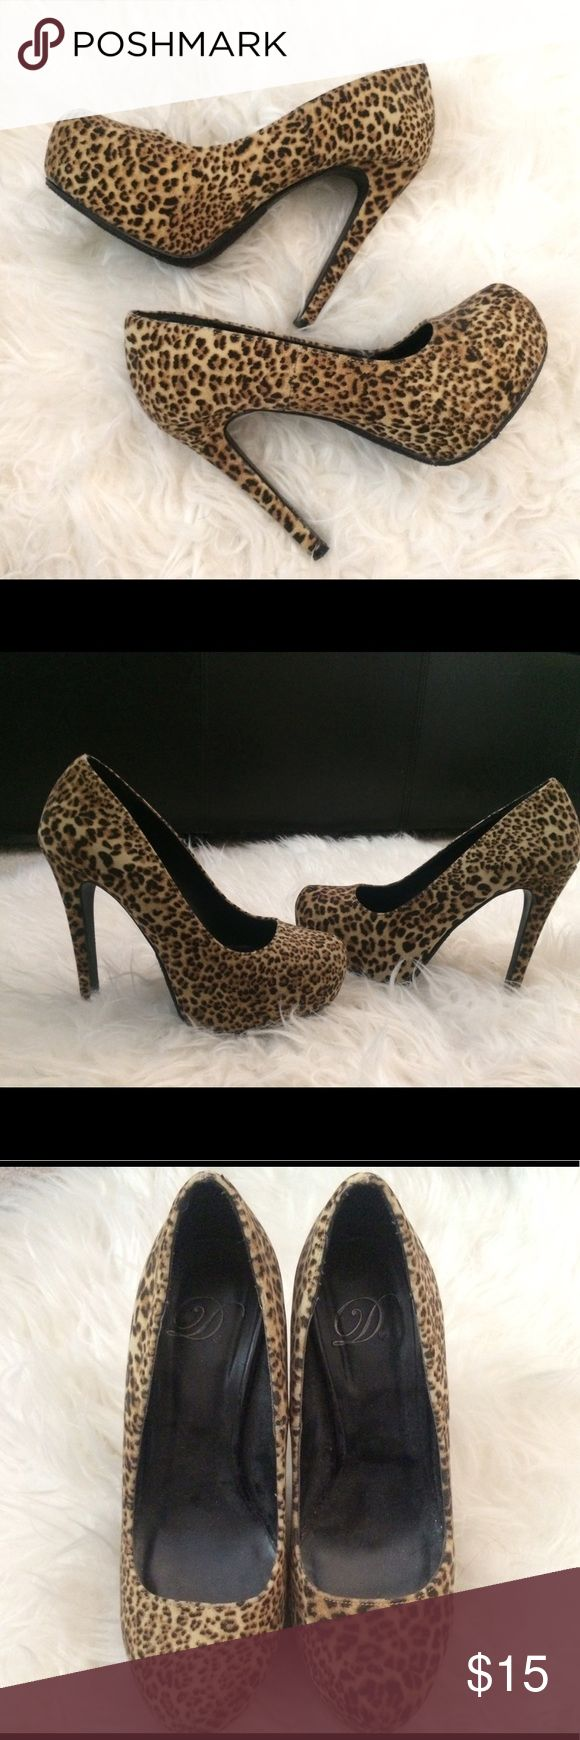 Leopard Print Pumps Gently used animal print heels. Velvet finish. Soles/heel are in great condition since they were barely used. Fits true to size and very comfortable. Shoes Heels